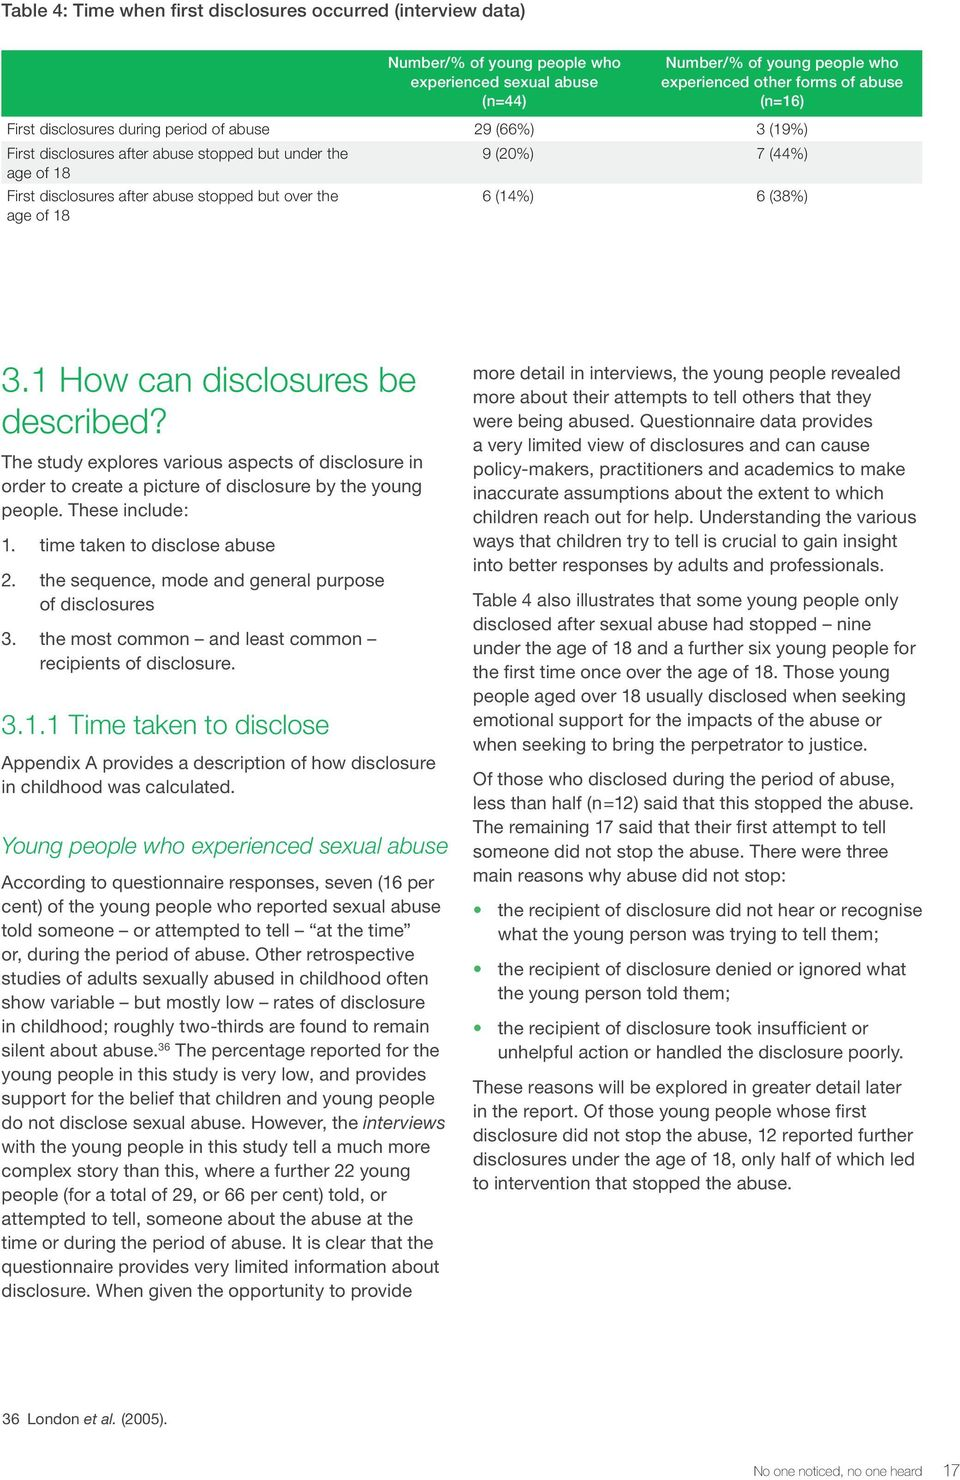 6 (38%) 3.1 How can disclosures be described? The study explores various aspects of disclosure in order to create a picture of disclosure by the young people. These include: 1.